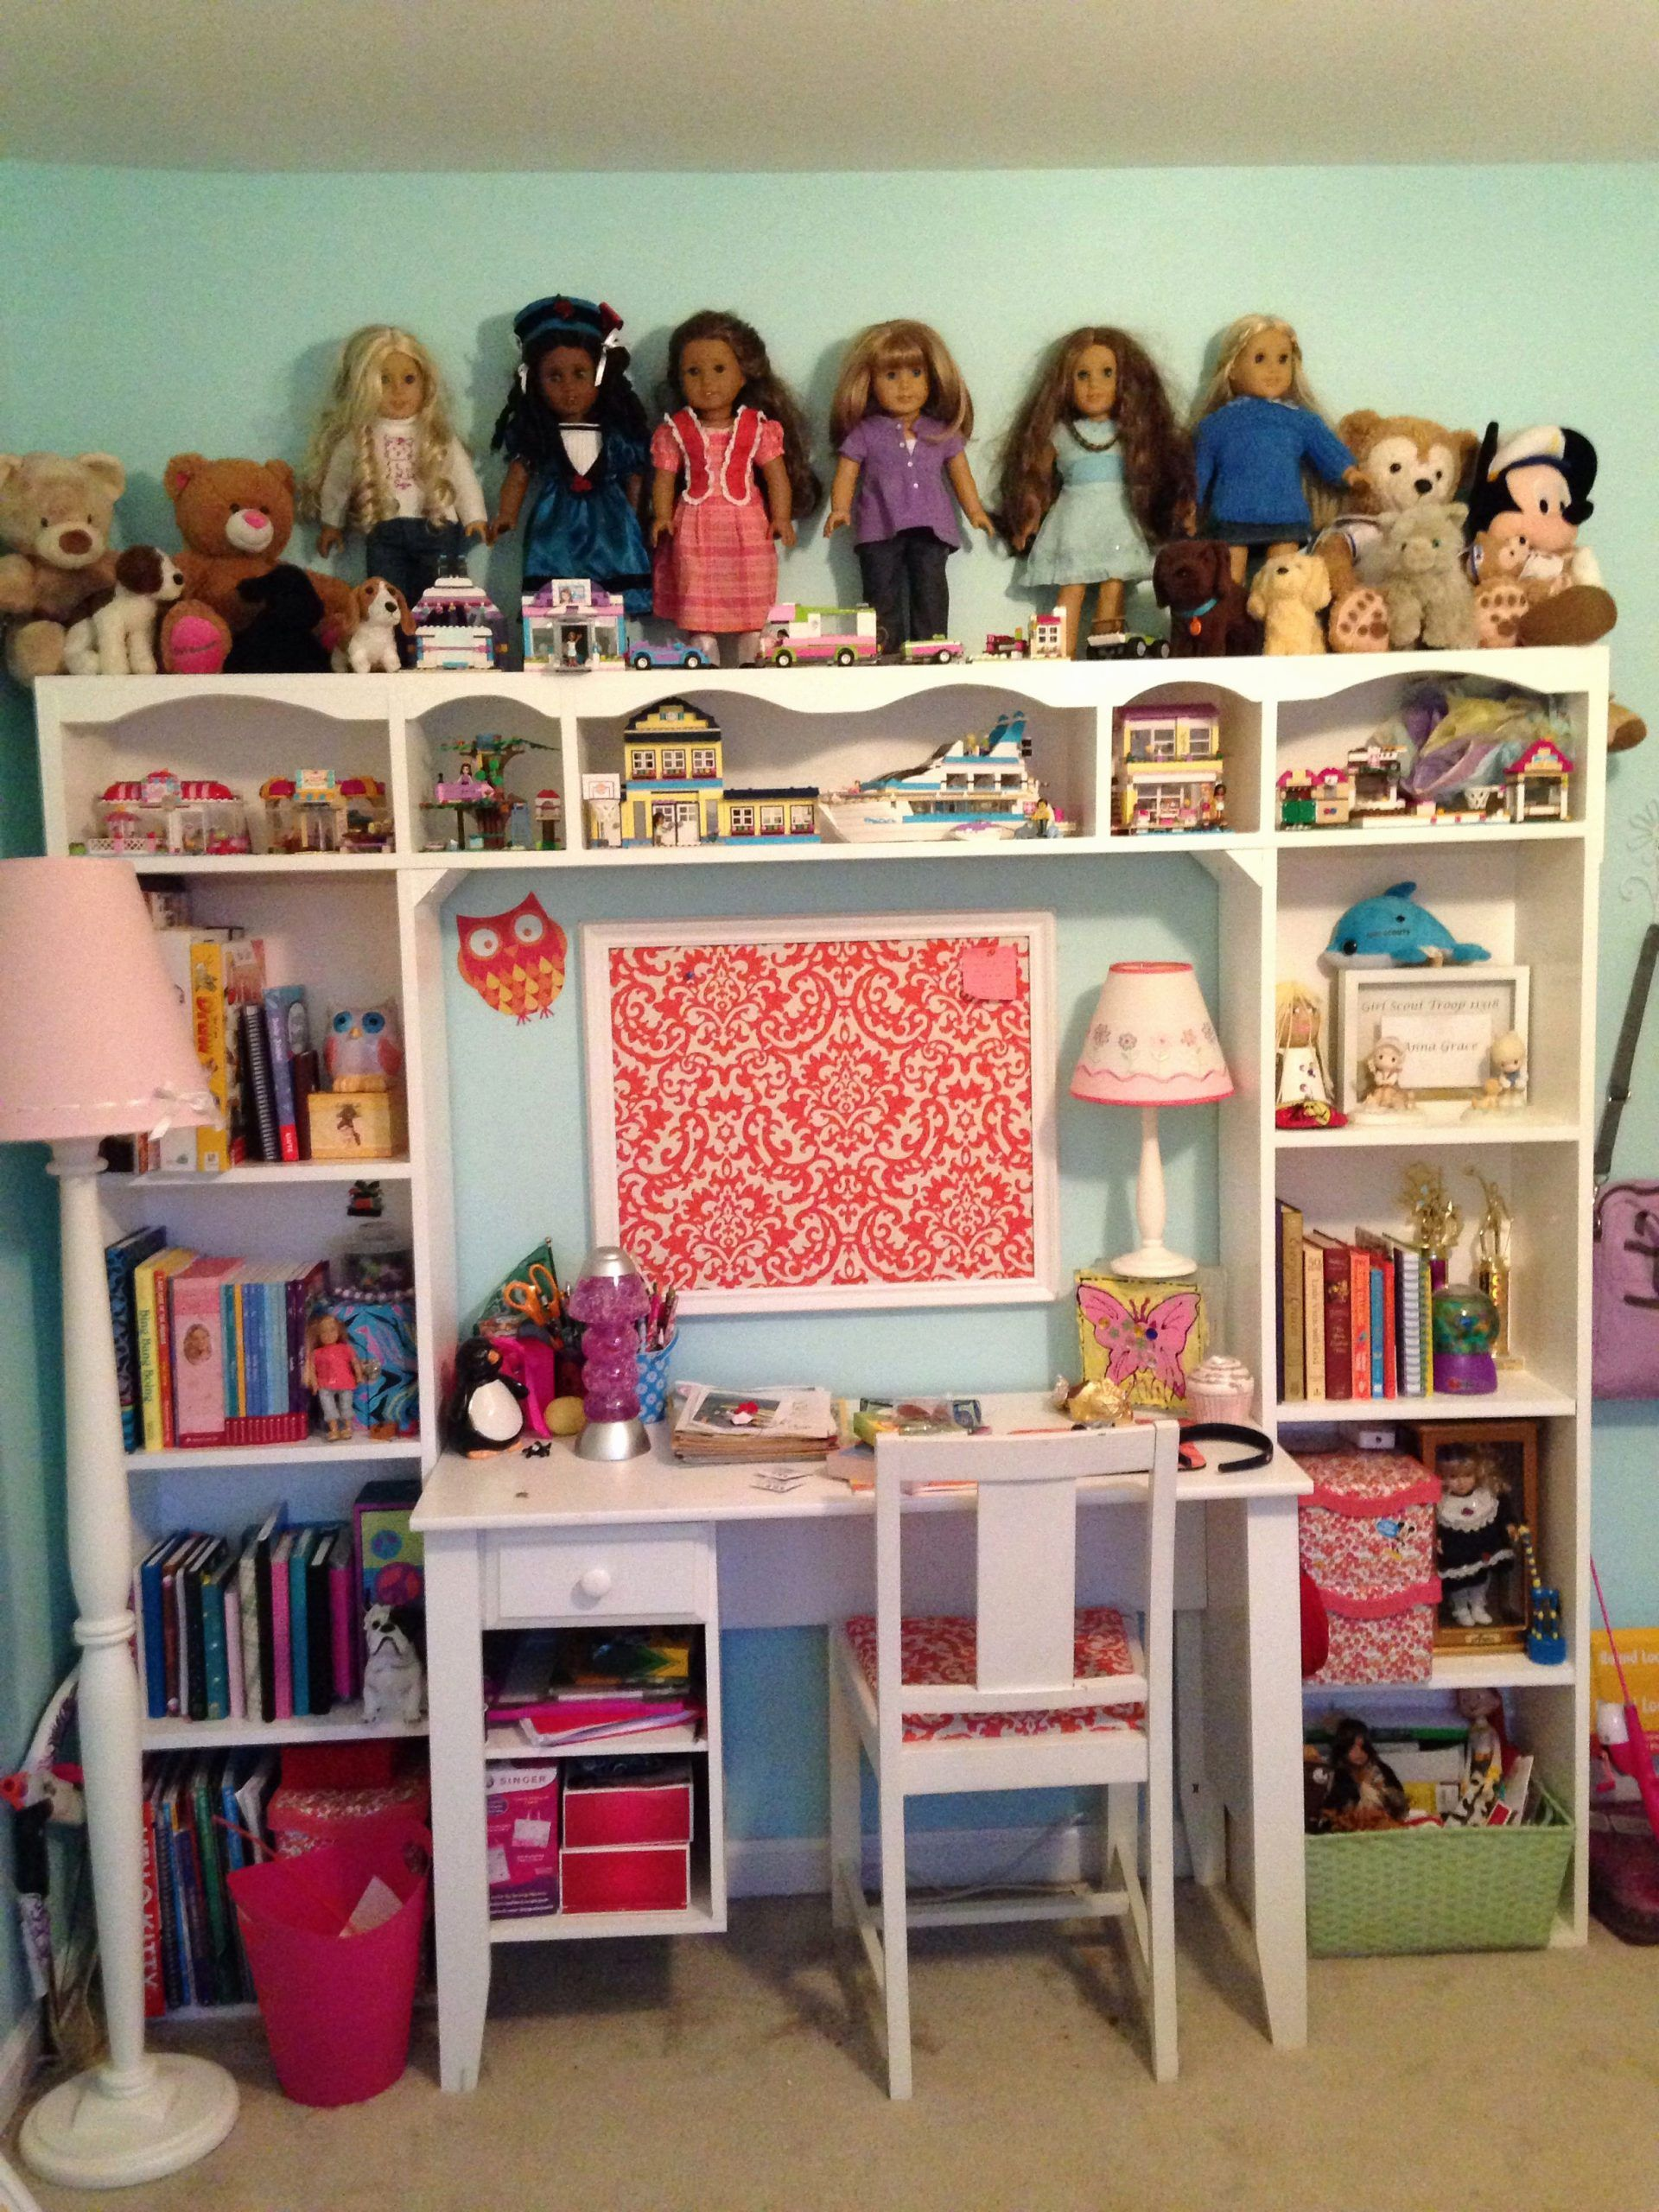 4 Year Olds Bedroom New 9 Year Old Girl S Bedroom in 2020 ...